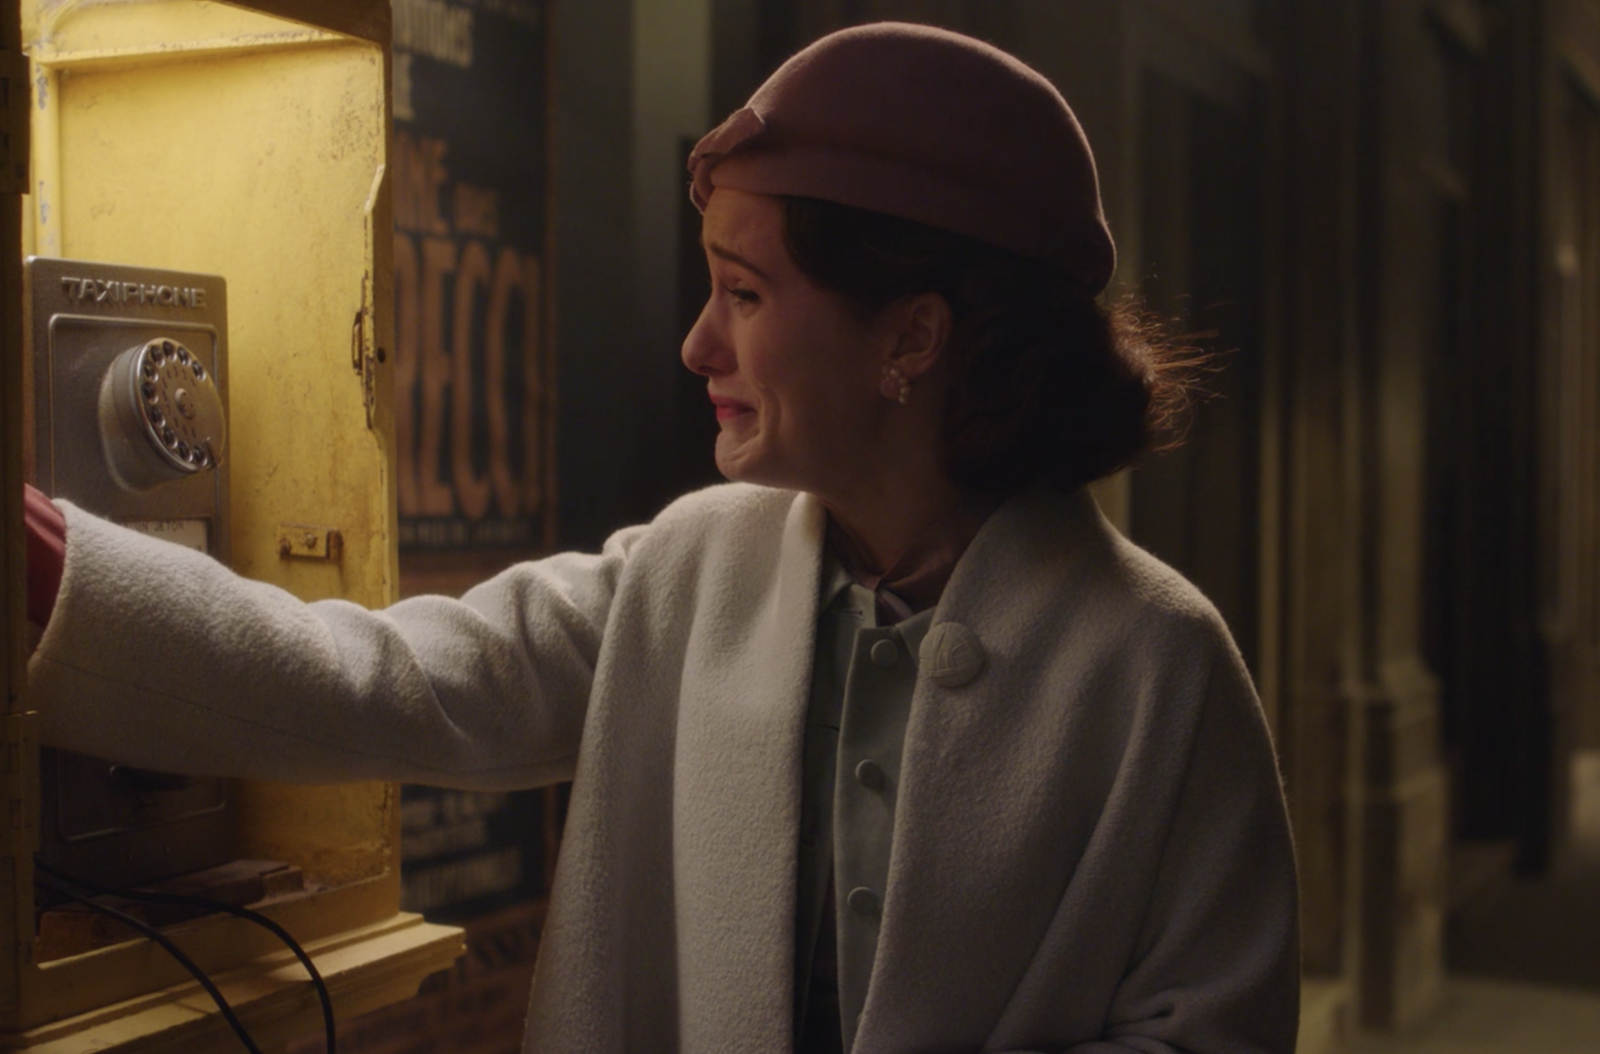 Rachel Brosnahan continued to amaze as the quick-witted Midge Maisel in the newly-released  The Marvelous Mrs. Maisel  Season 2. -  In the first episode of Season 2, Rachel Brosnahan goes from performing a hilarious comedy set in Paris to crying on the phone with Joel, and it was in that moment that we realized the full range of her potential.